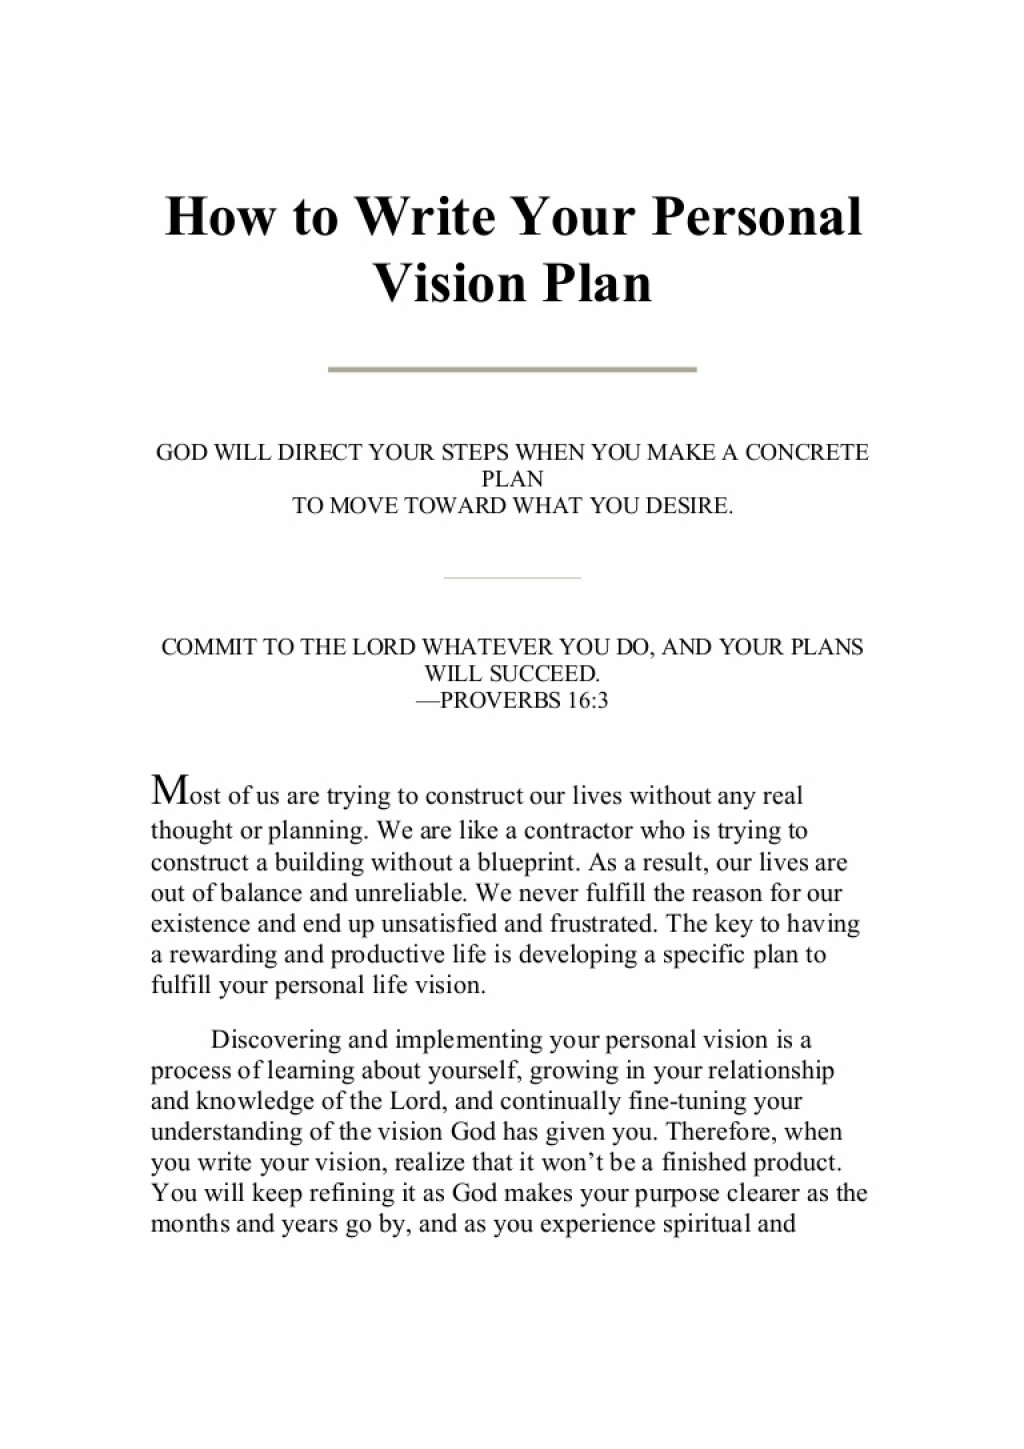 011 Where Do You See Yourself In Years Essay Example Howtowriteyourpersonalvisionplan Phpapp01 Thumbnail Sensational 10 Best Answer Medical School Large